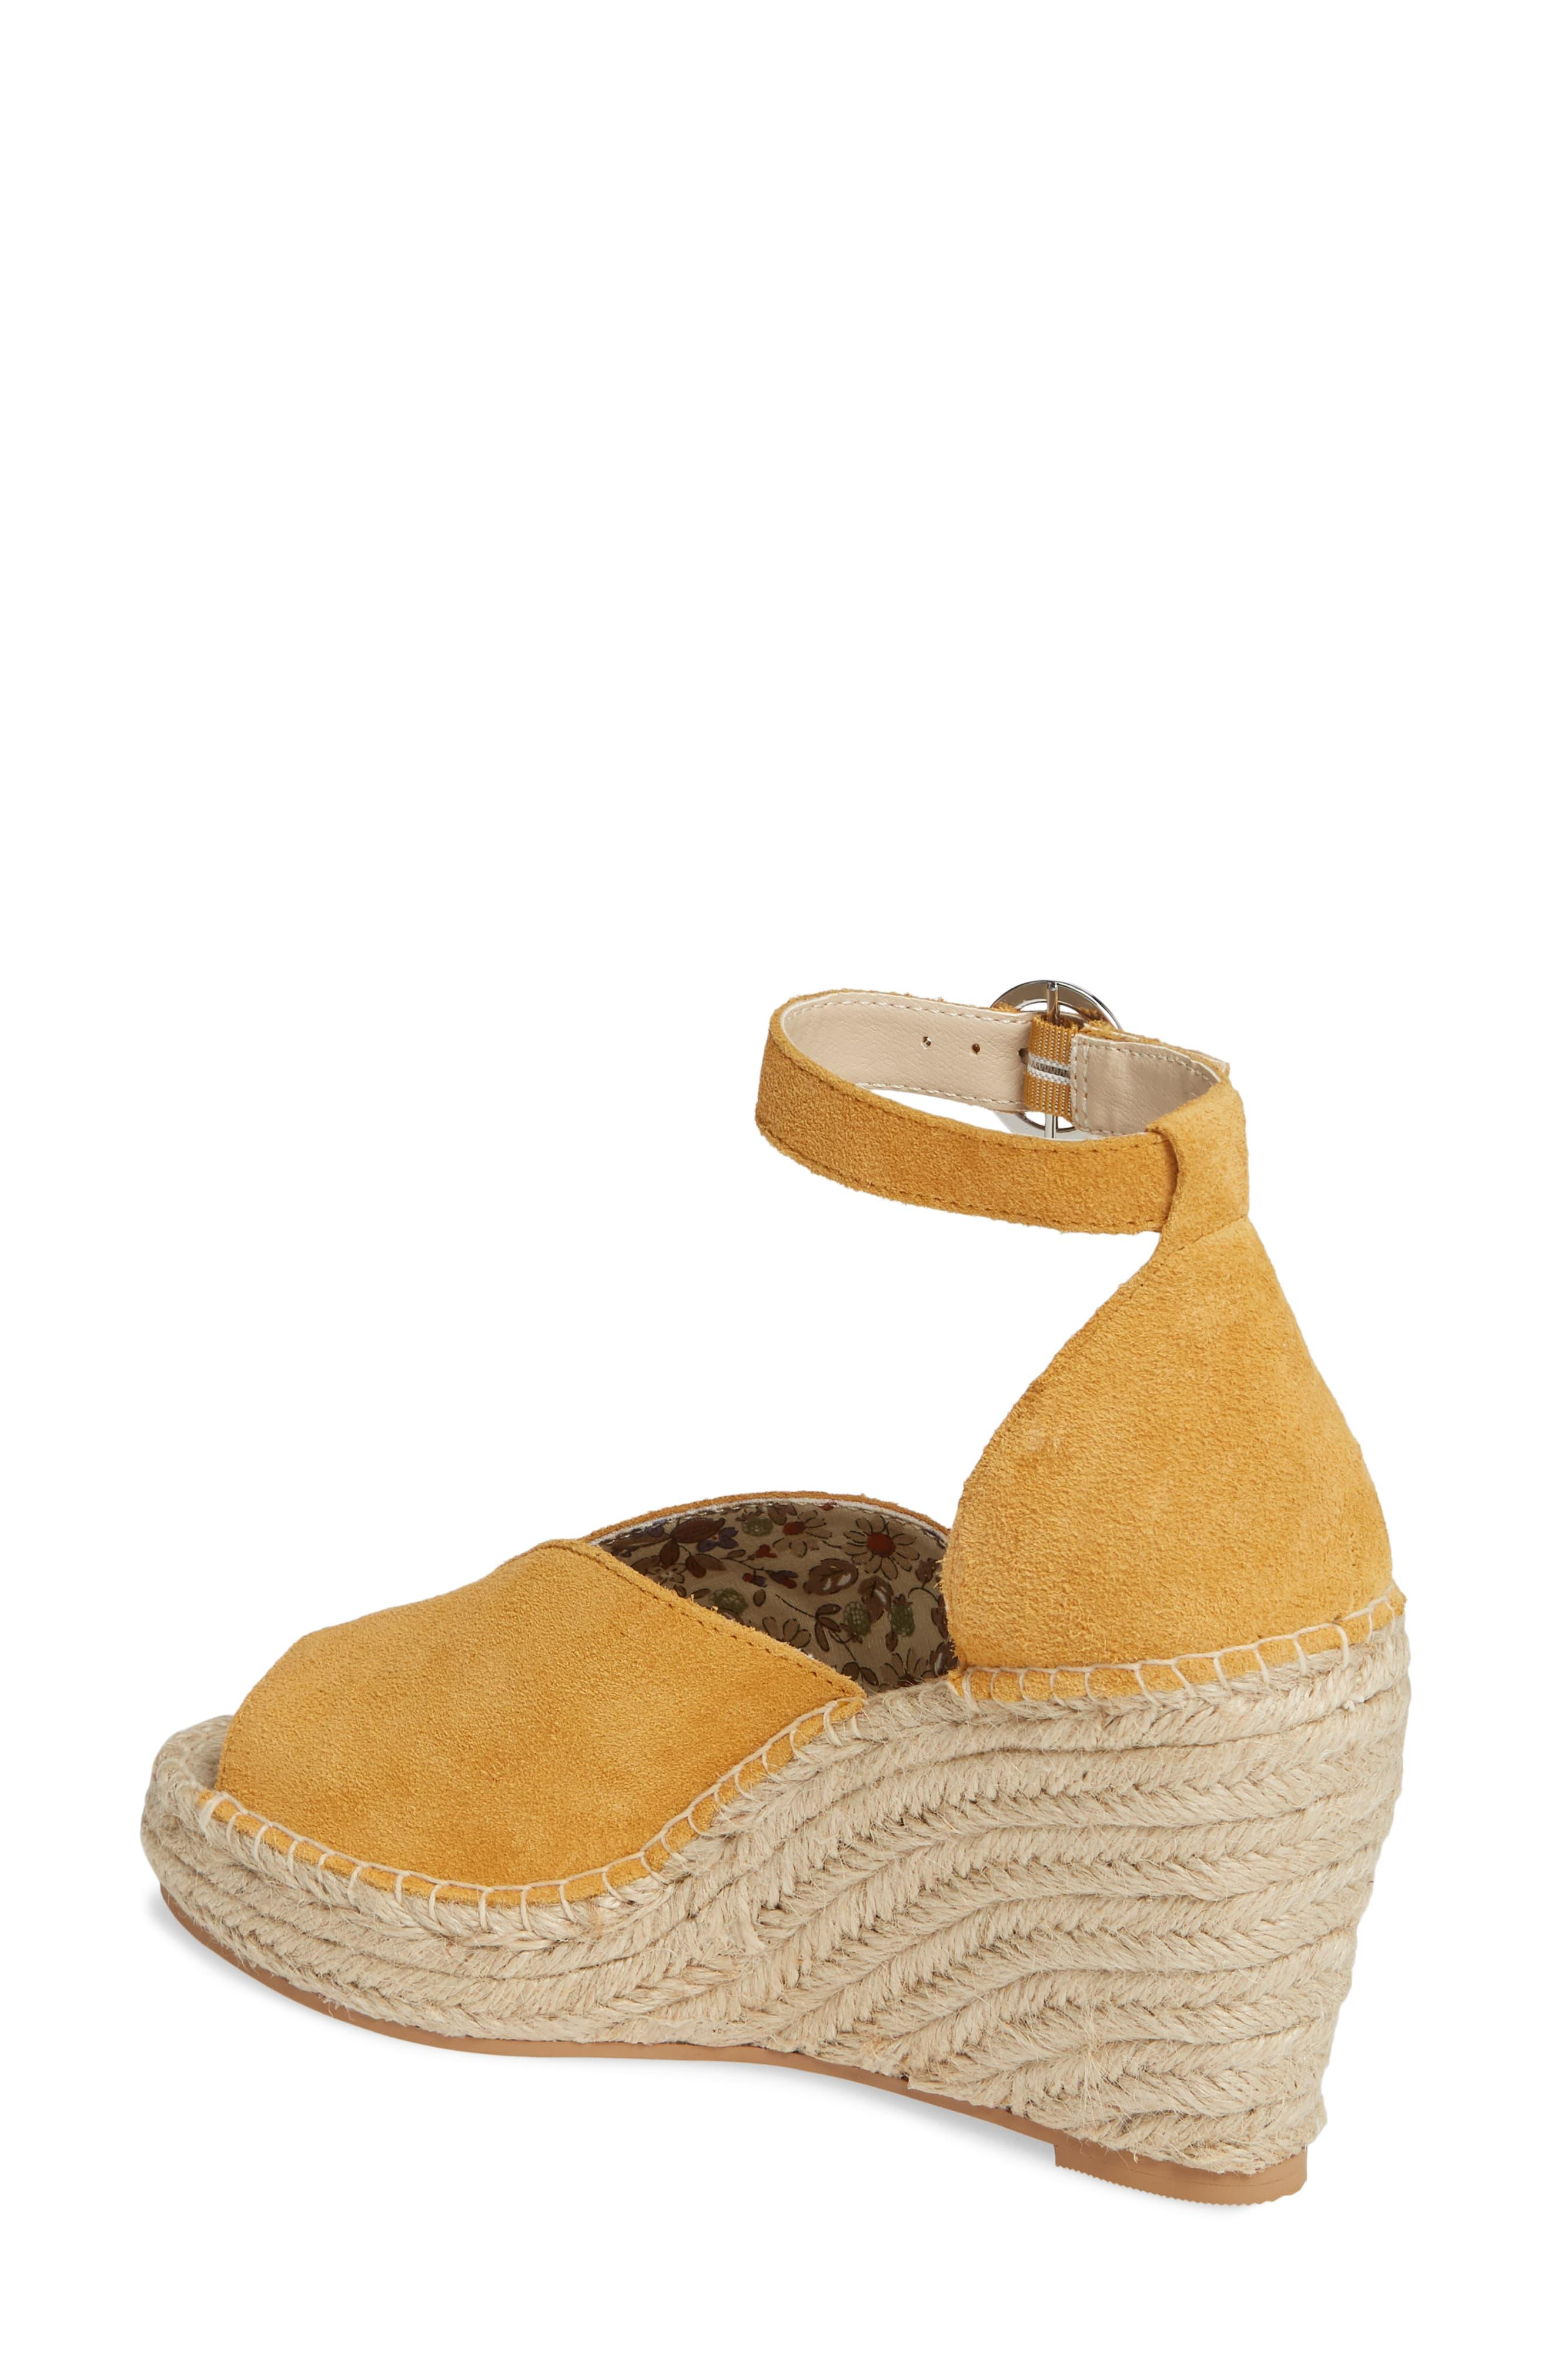 f5d3e0475c4 Women's Collectibles Espadrille Wedge Sandal